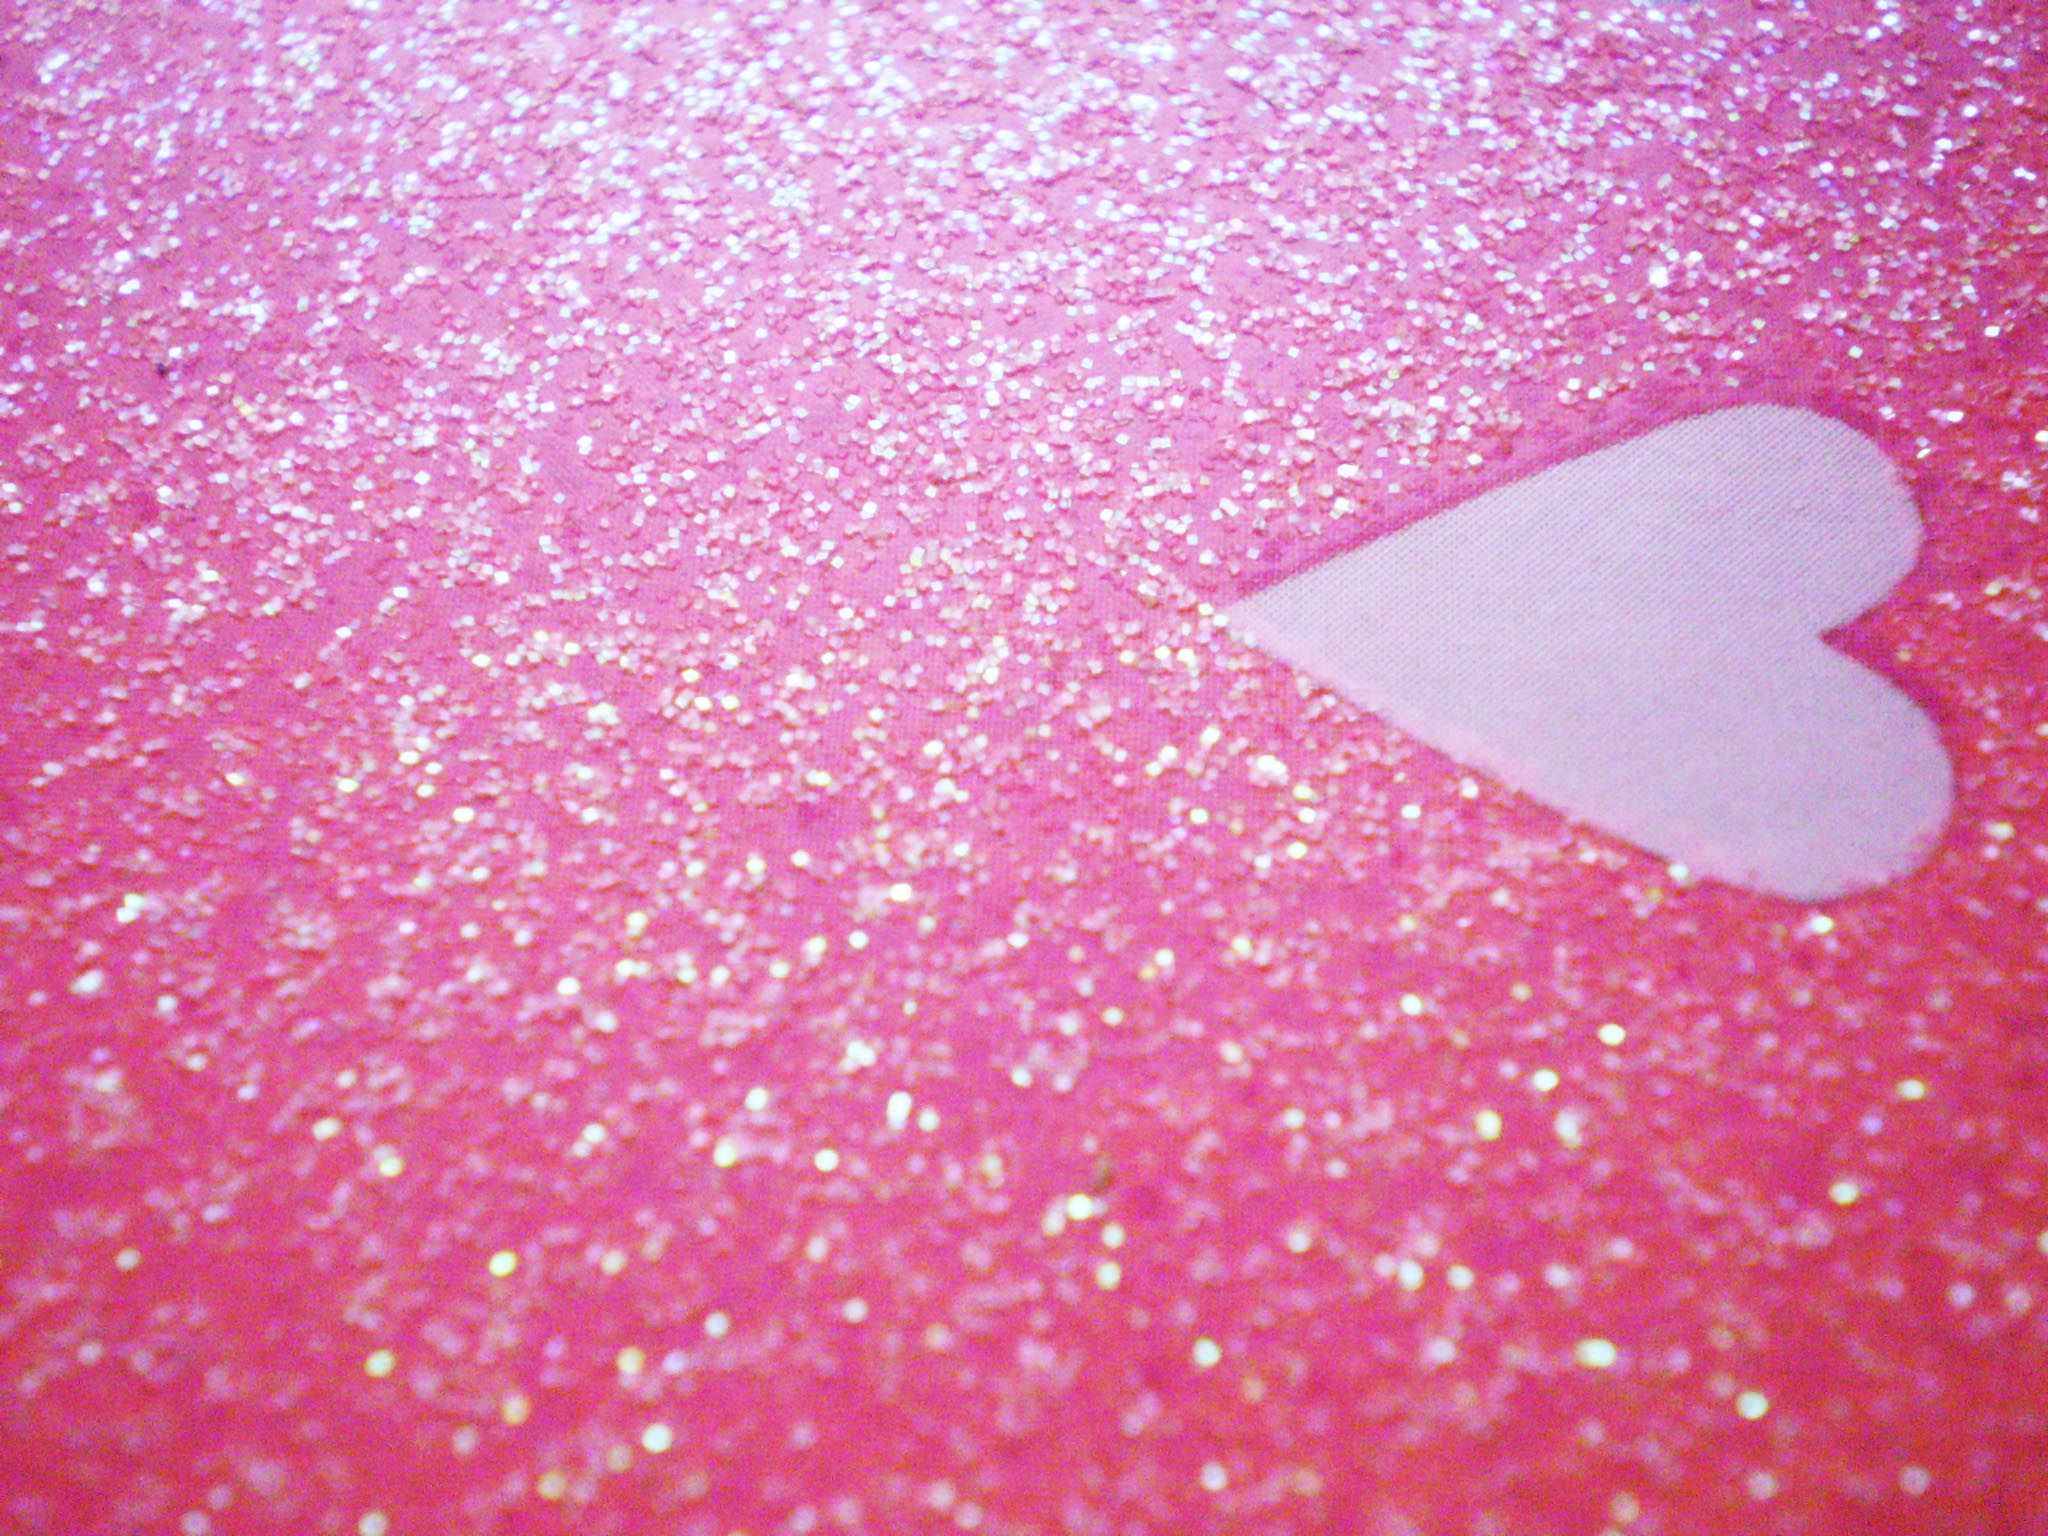 Glitter wallpaper free download for mobile